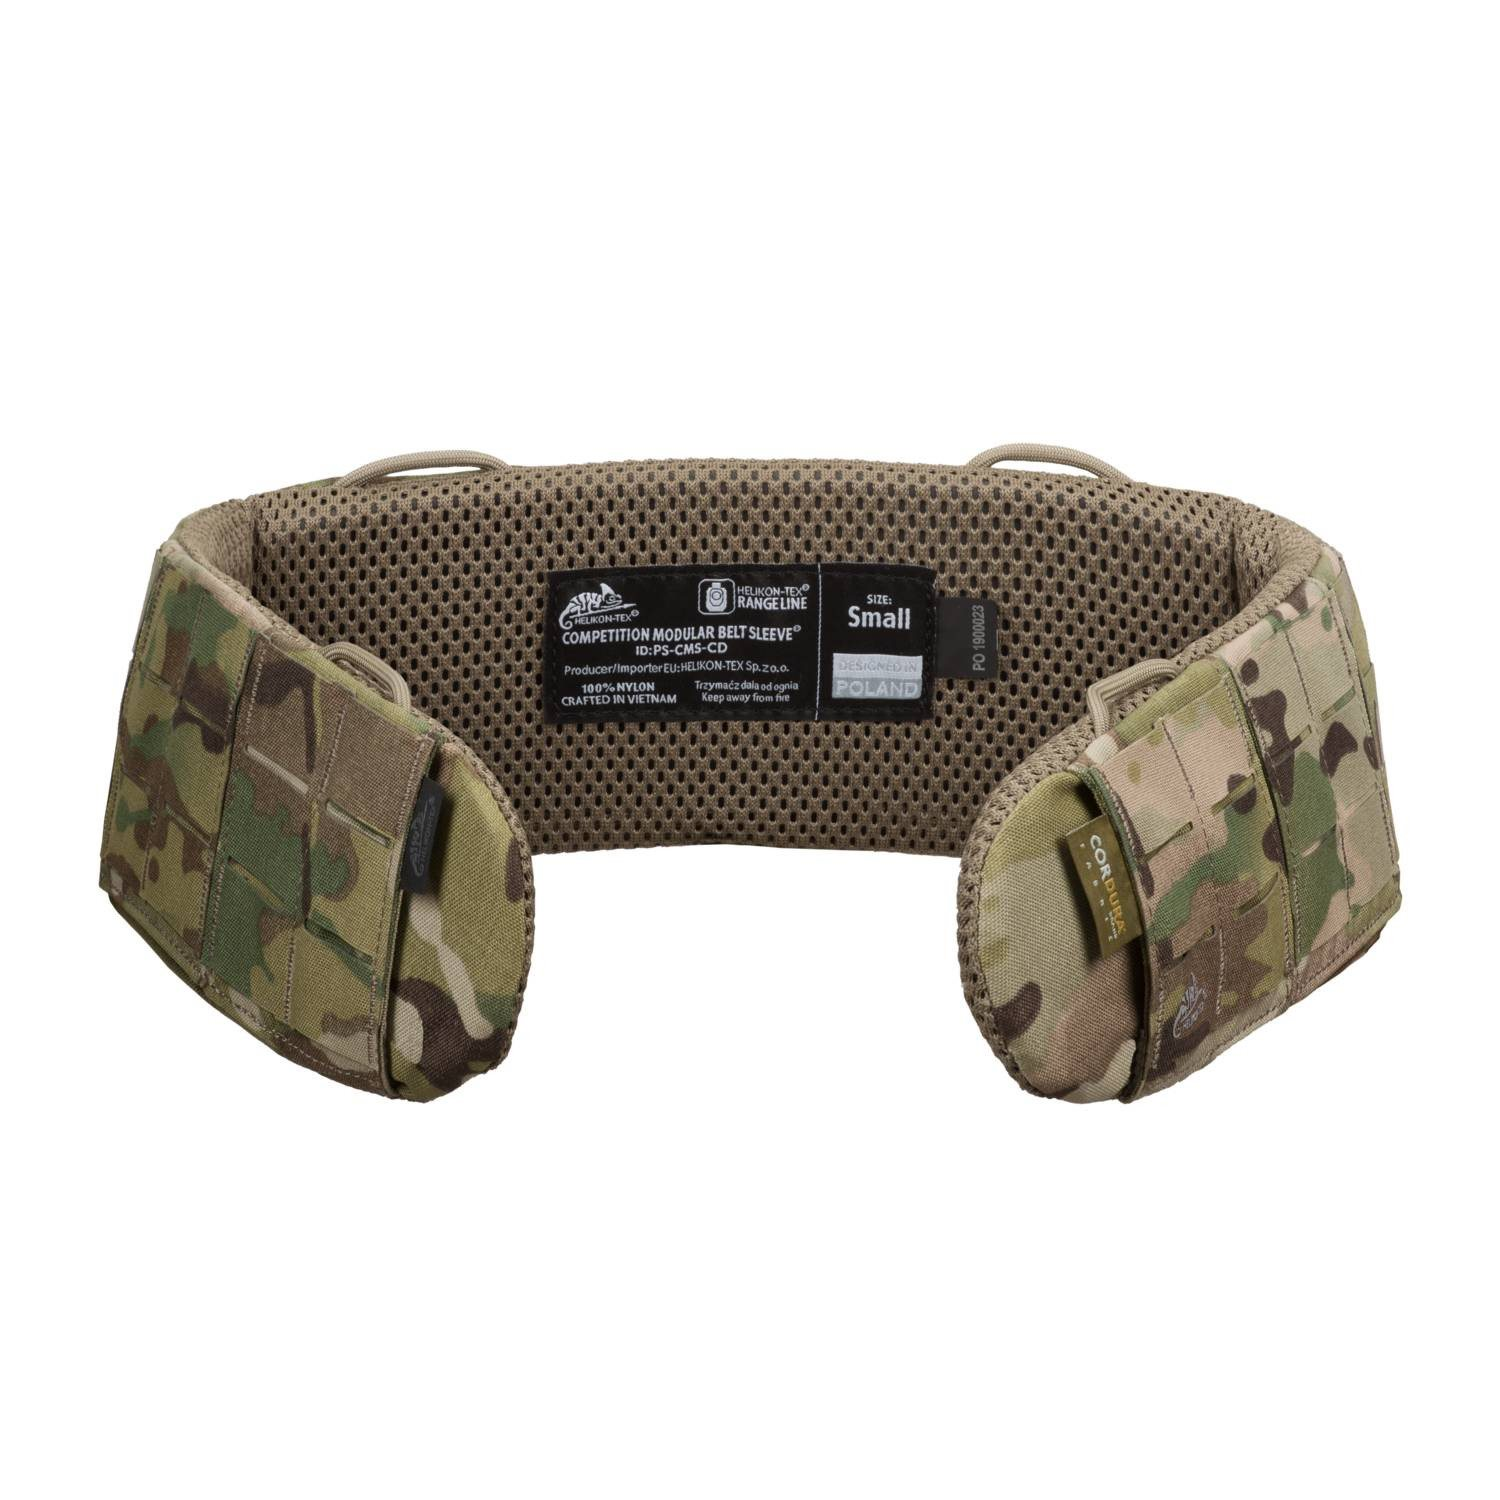 Opasek bojový COMPETITION MODULAR MULTICAM® Helikon-Tex® PS-CMS-CD-34 L-11